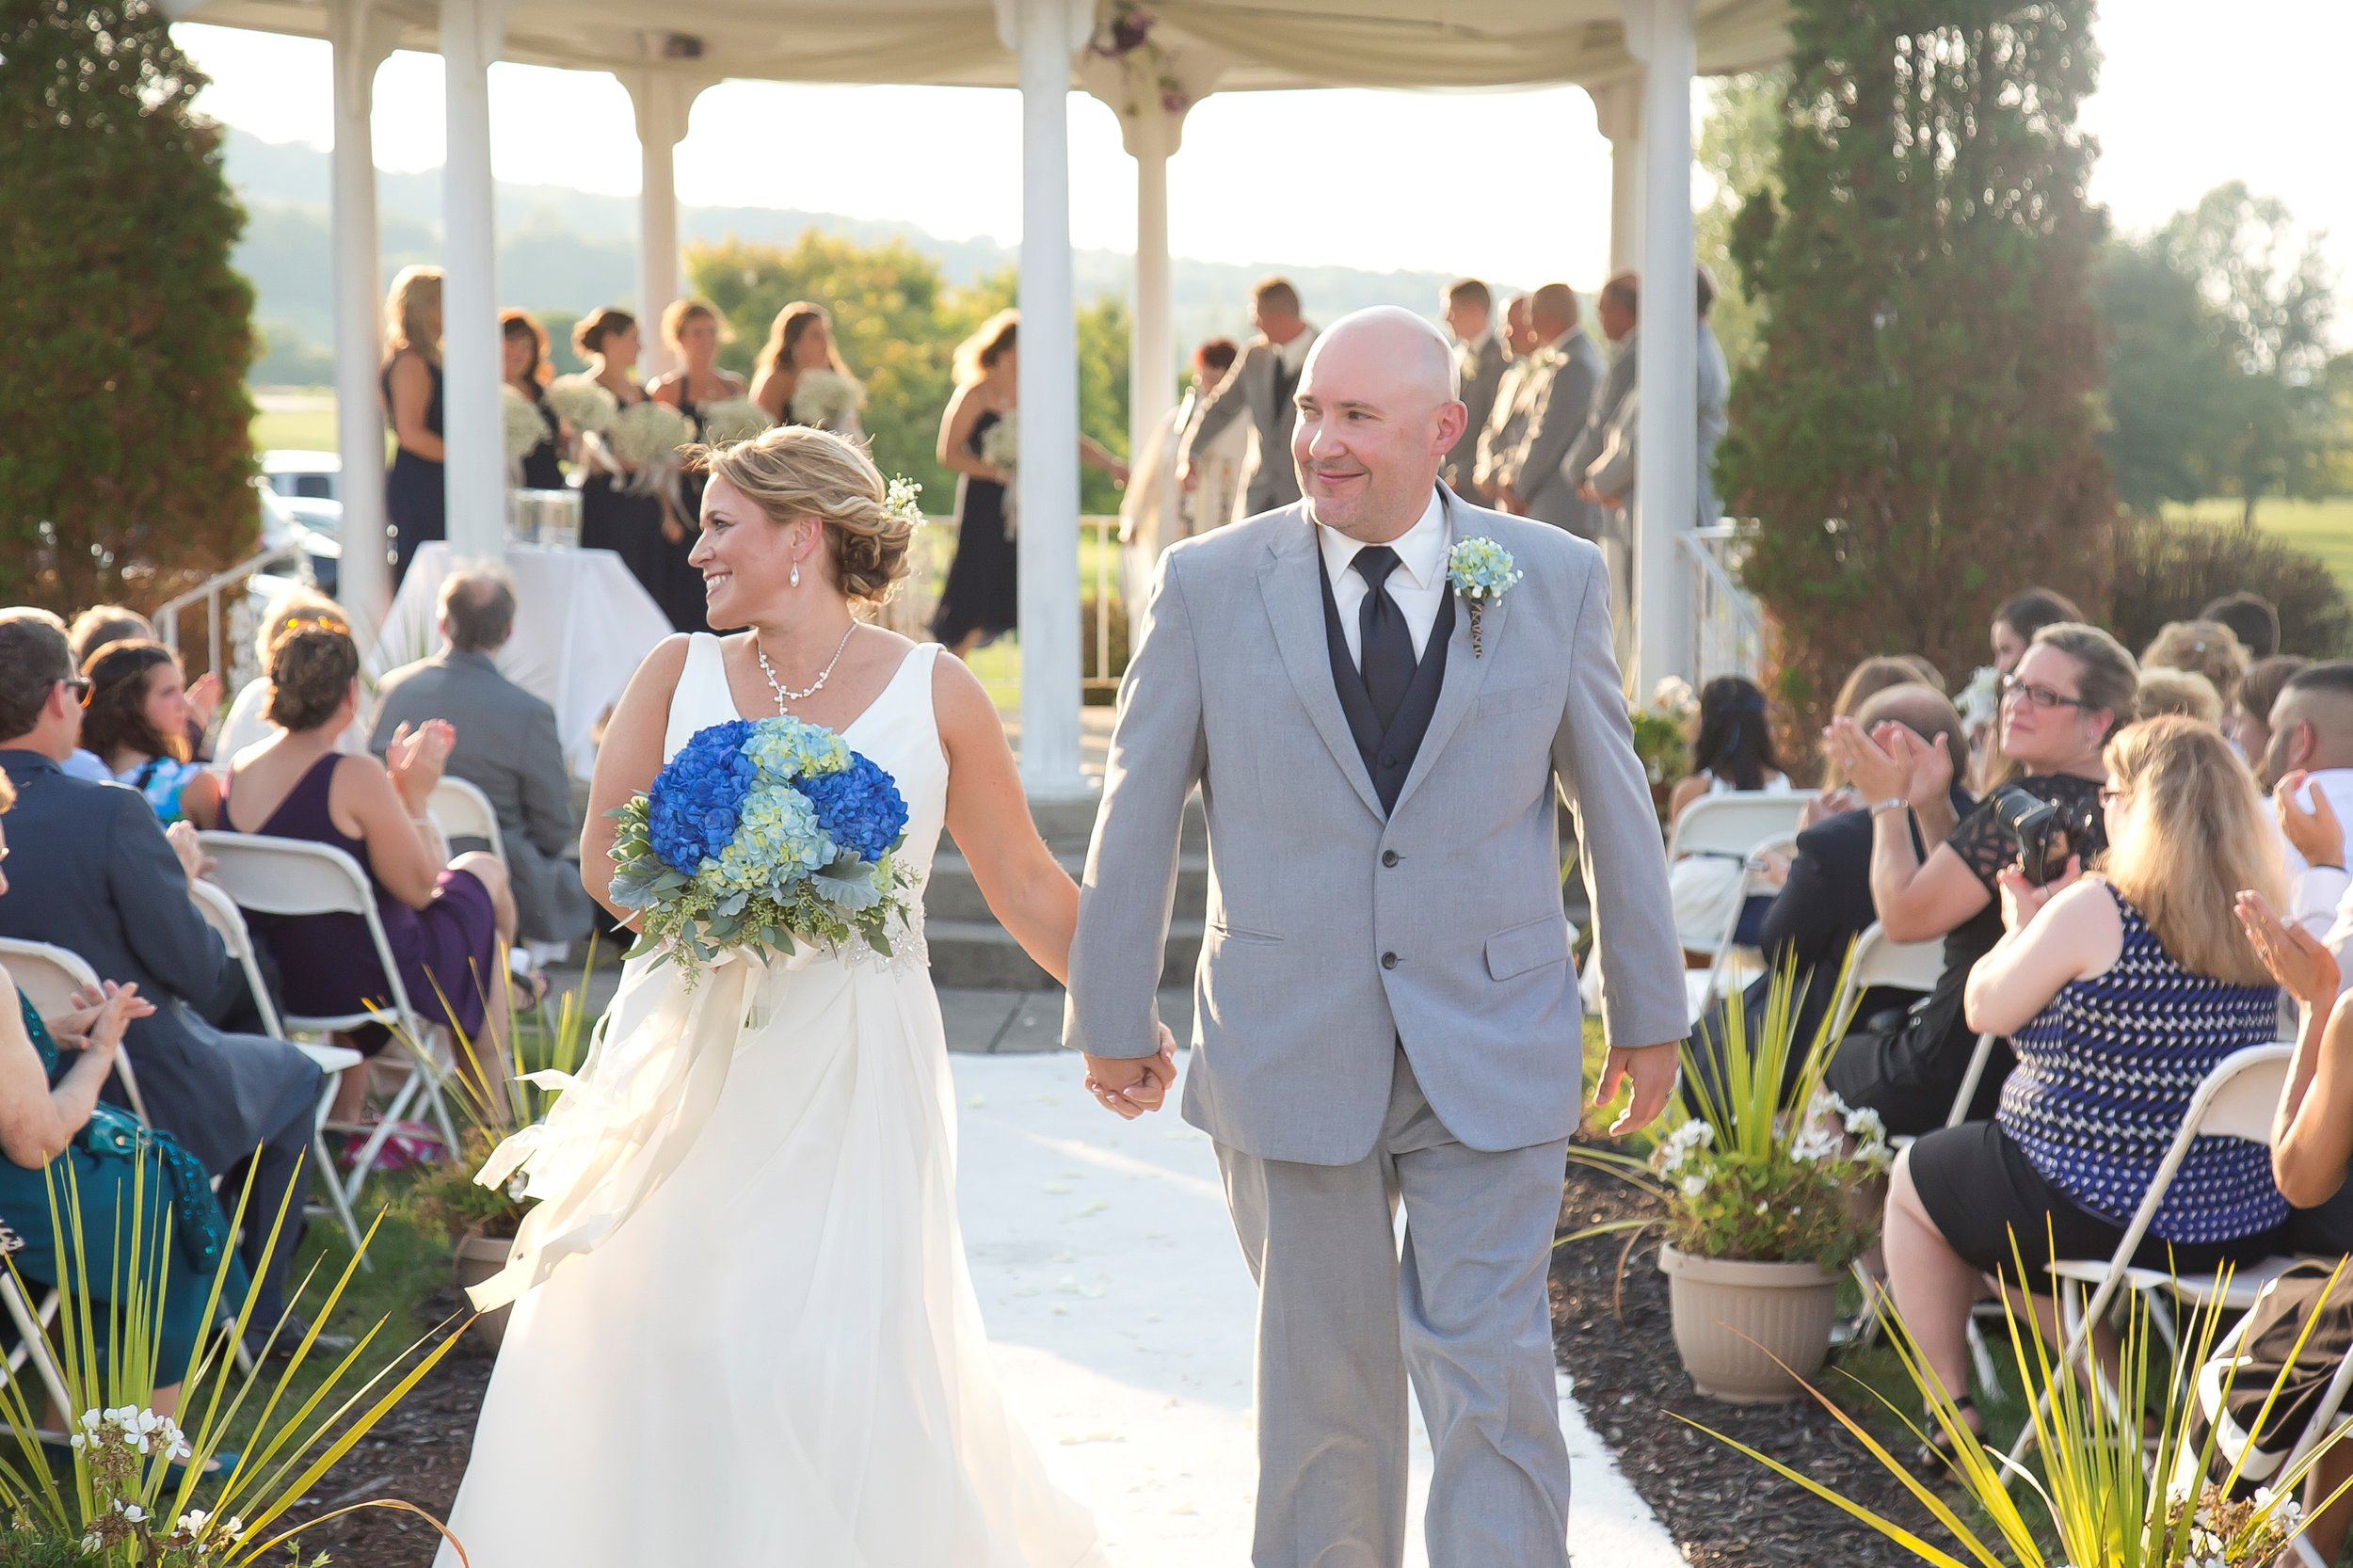 entry-14-samantha_crawford_all_occasion_photography_bride_groom_recession.jpg